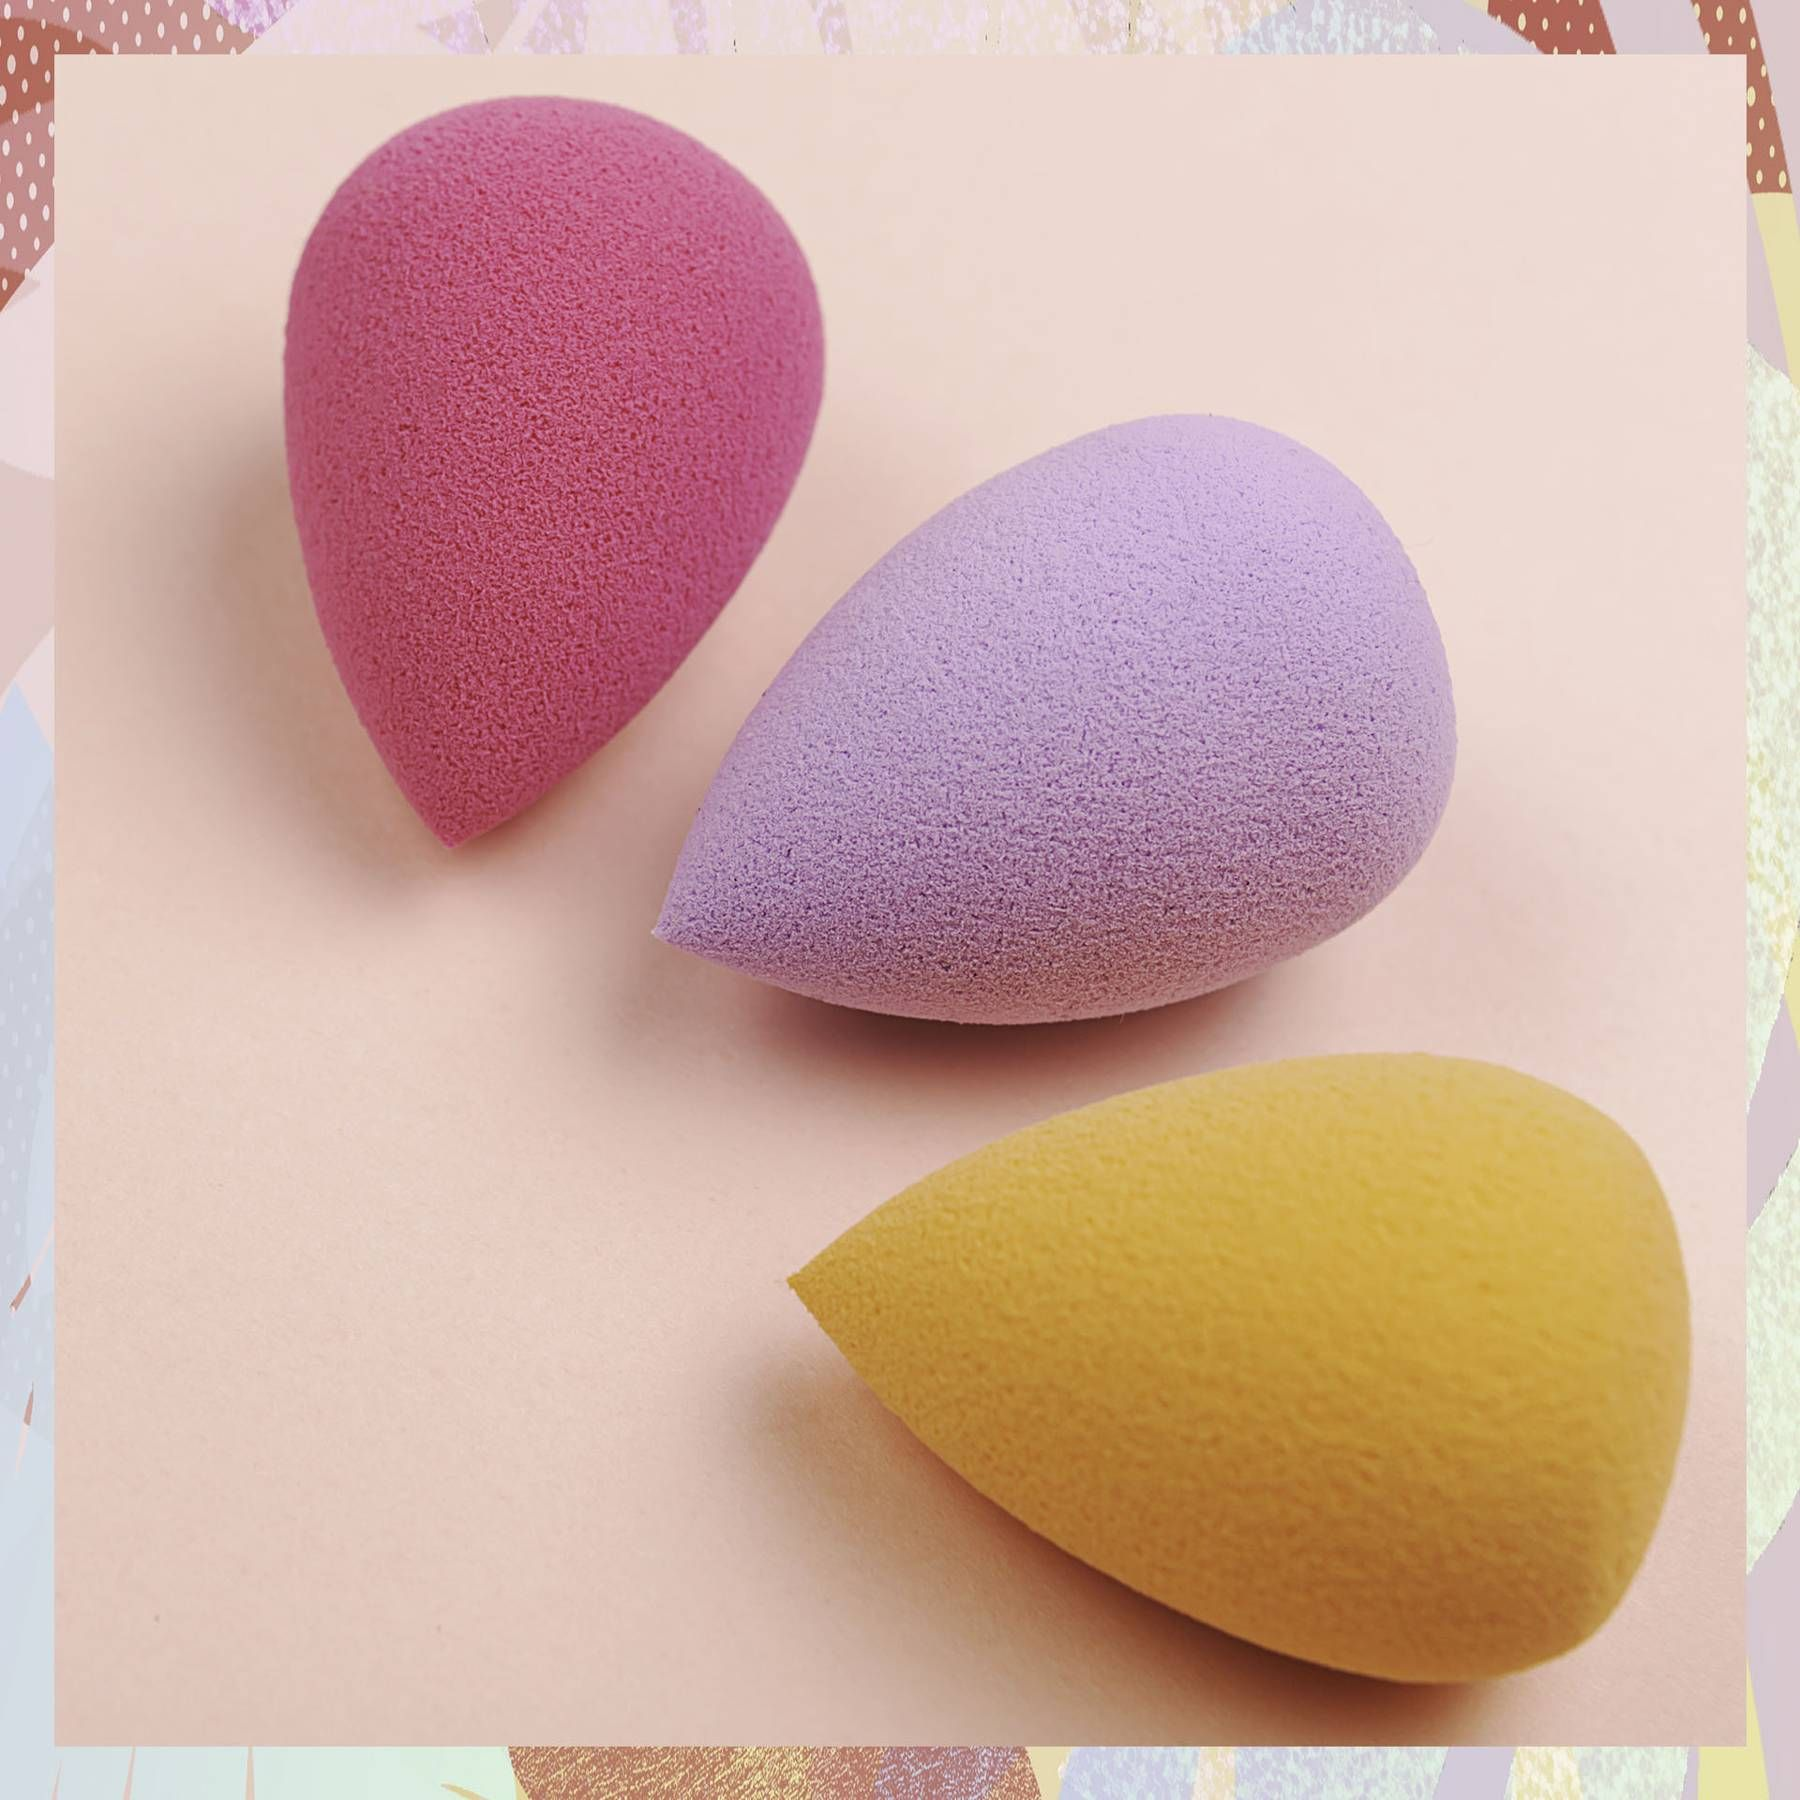 Here's what each type of makeup sponge actually does